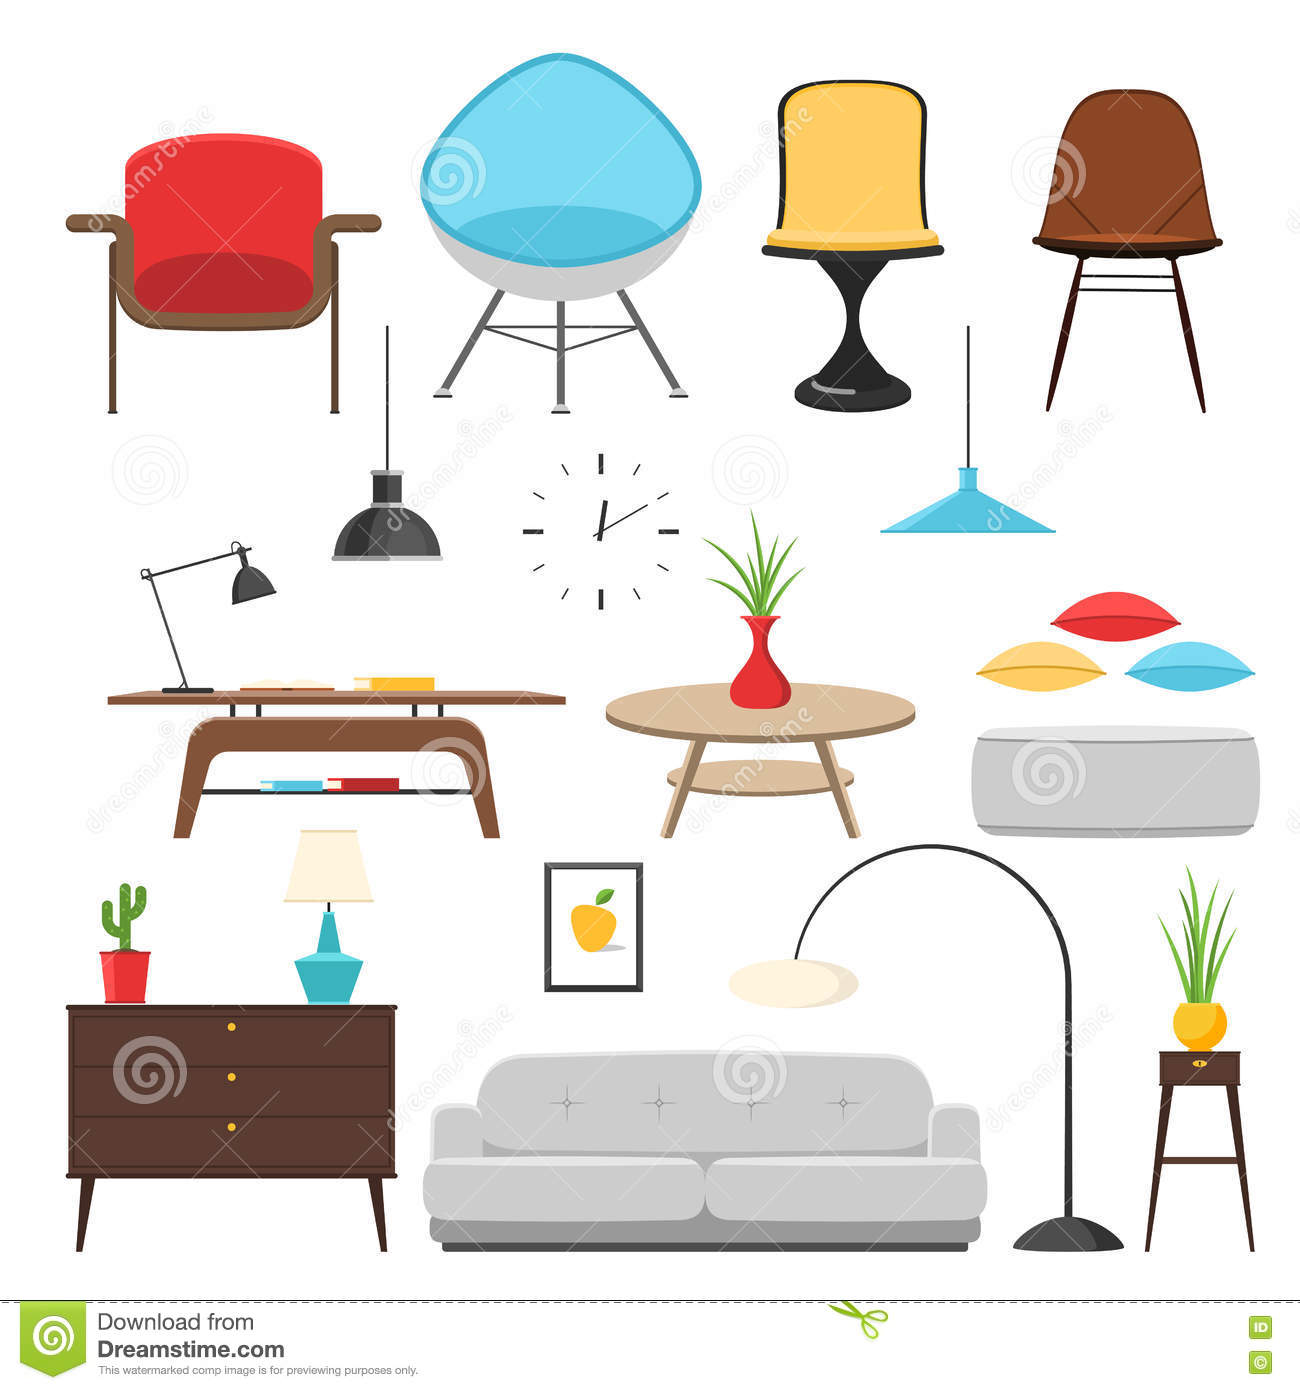 Furniture interior icon set stock vector illustration of couch interior 72390216 Home decoration vector free